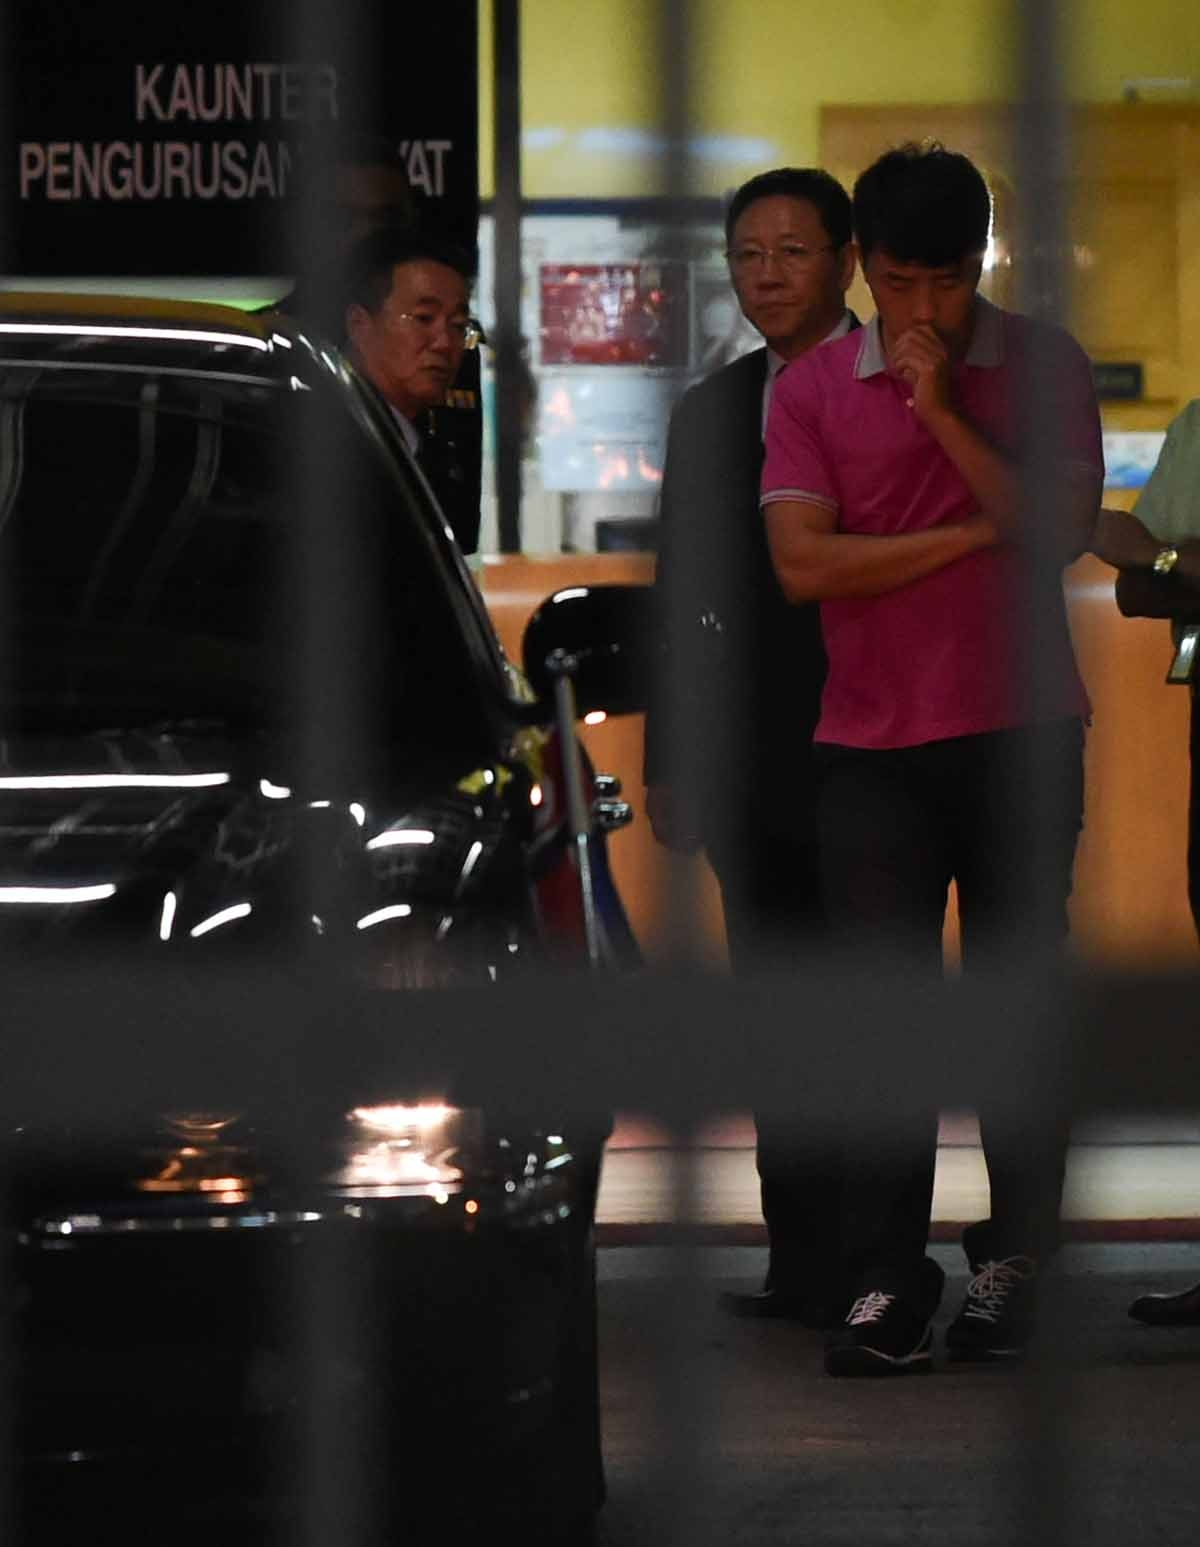 North Korean embassy officials leave the Forensic department where the body of a North Korean man suspected to be Kim Jong-Nam, half-brother of North Korean leader Kim Jong-Un, is bieng kept at the Hospital Kuala Lumpur in Kuala Lumpur on February 15, 201